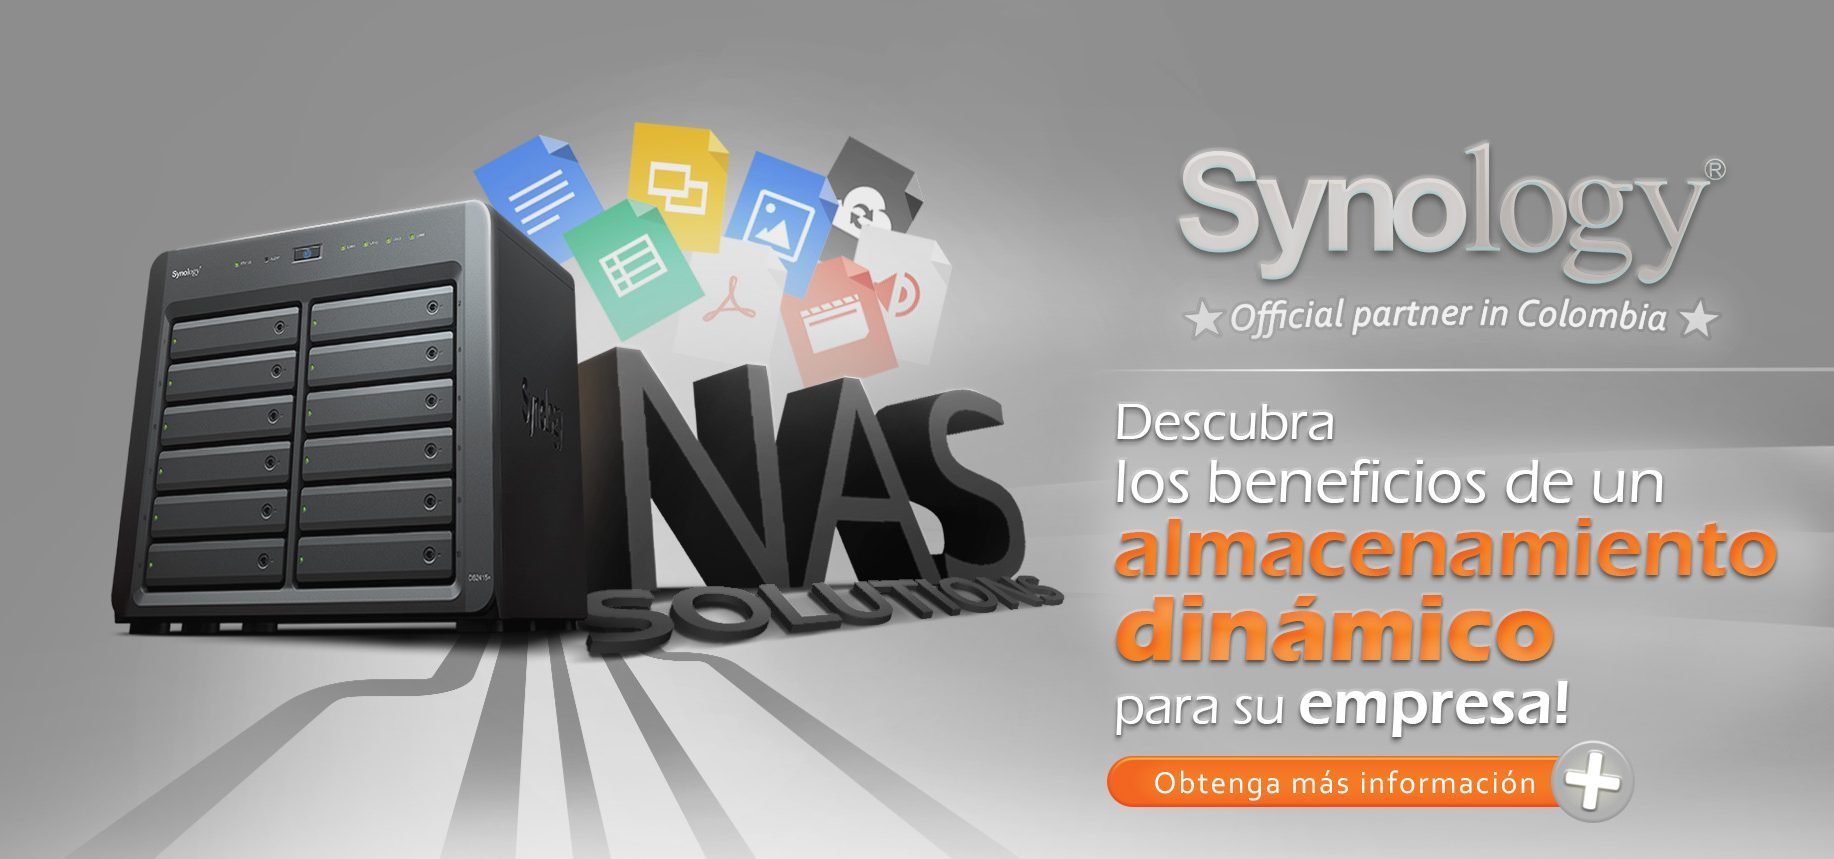 Distribuidor Synology Colombia